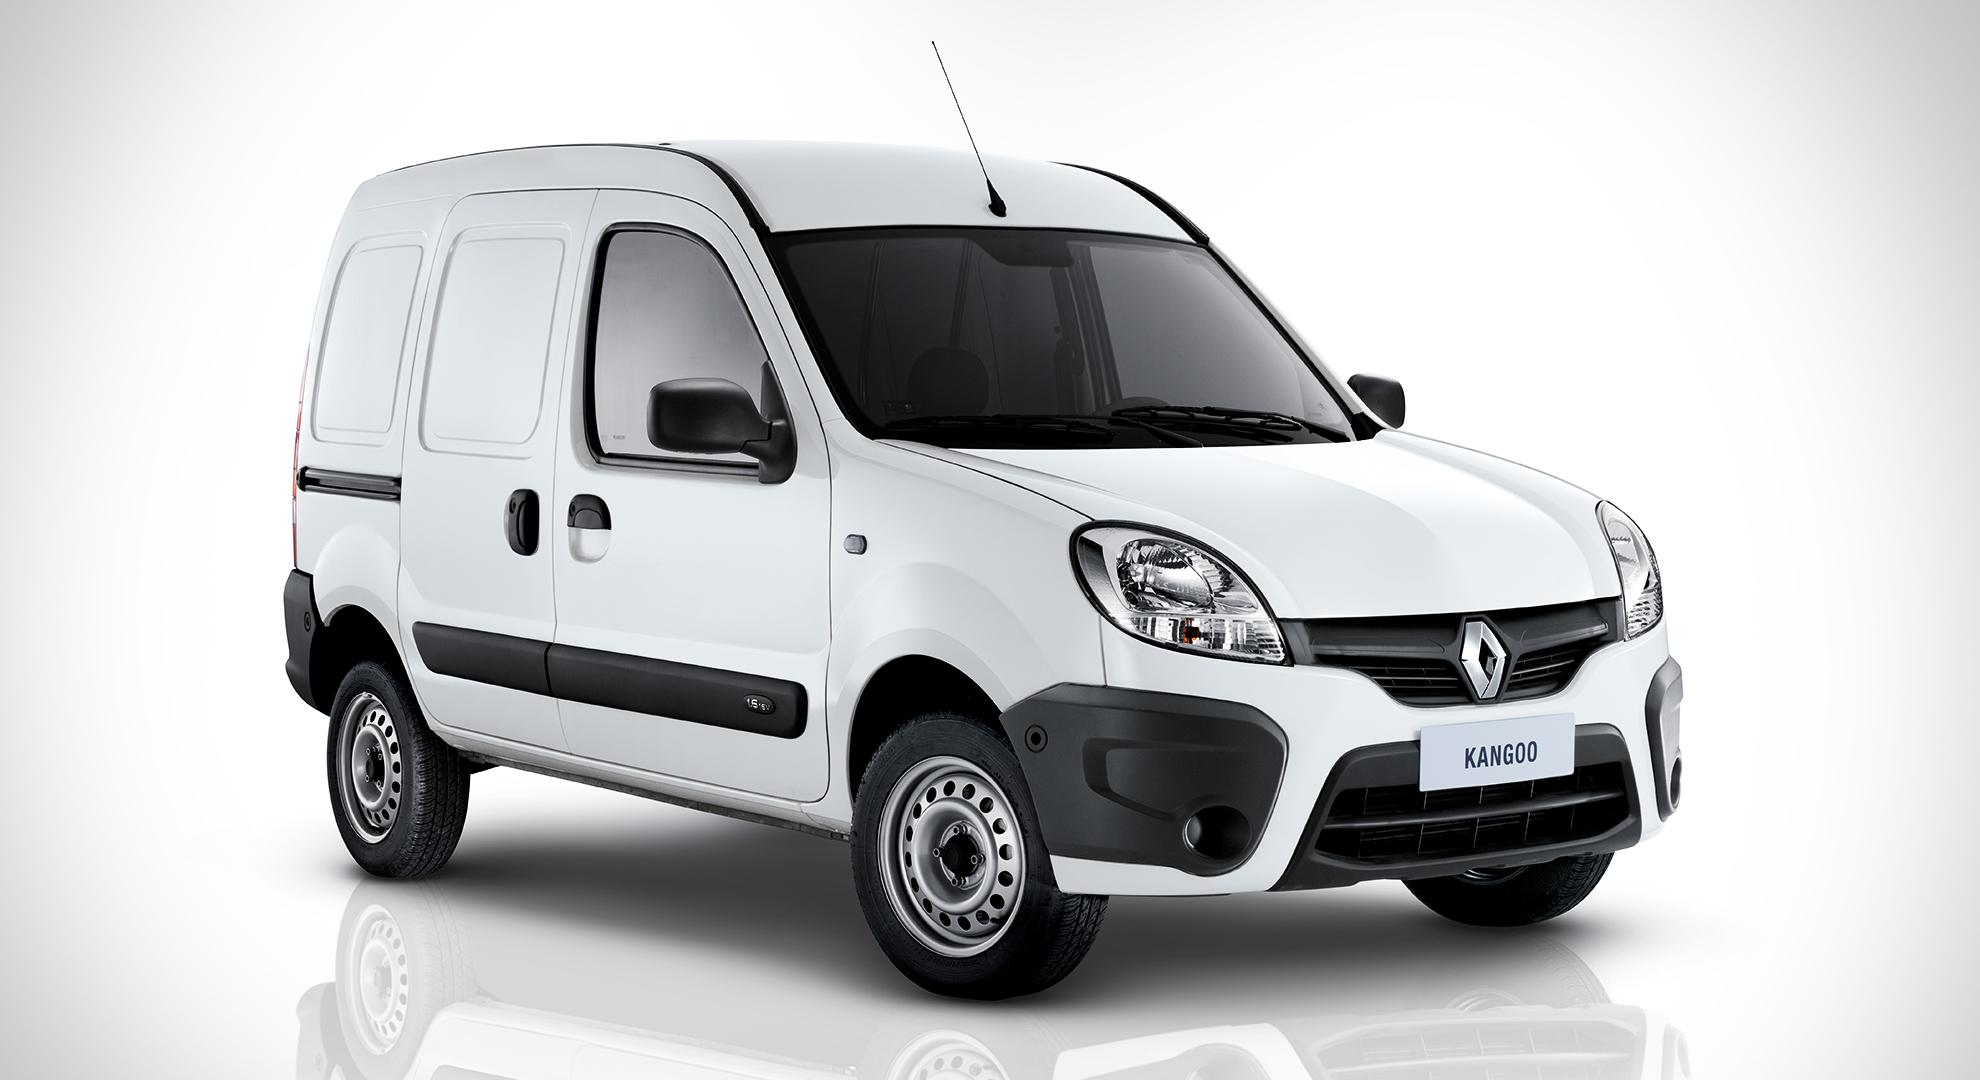 novo renault kangoo 2015 pre o consumo ficha t cnica fotos e avalia o. Black Bedroom Furniture Sets. Home Design Ideas